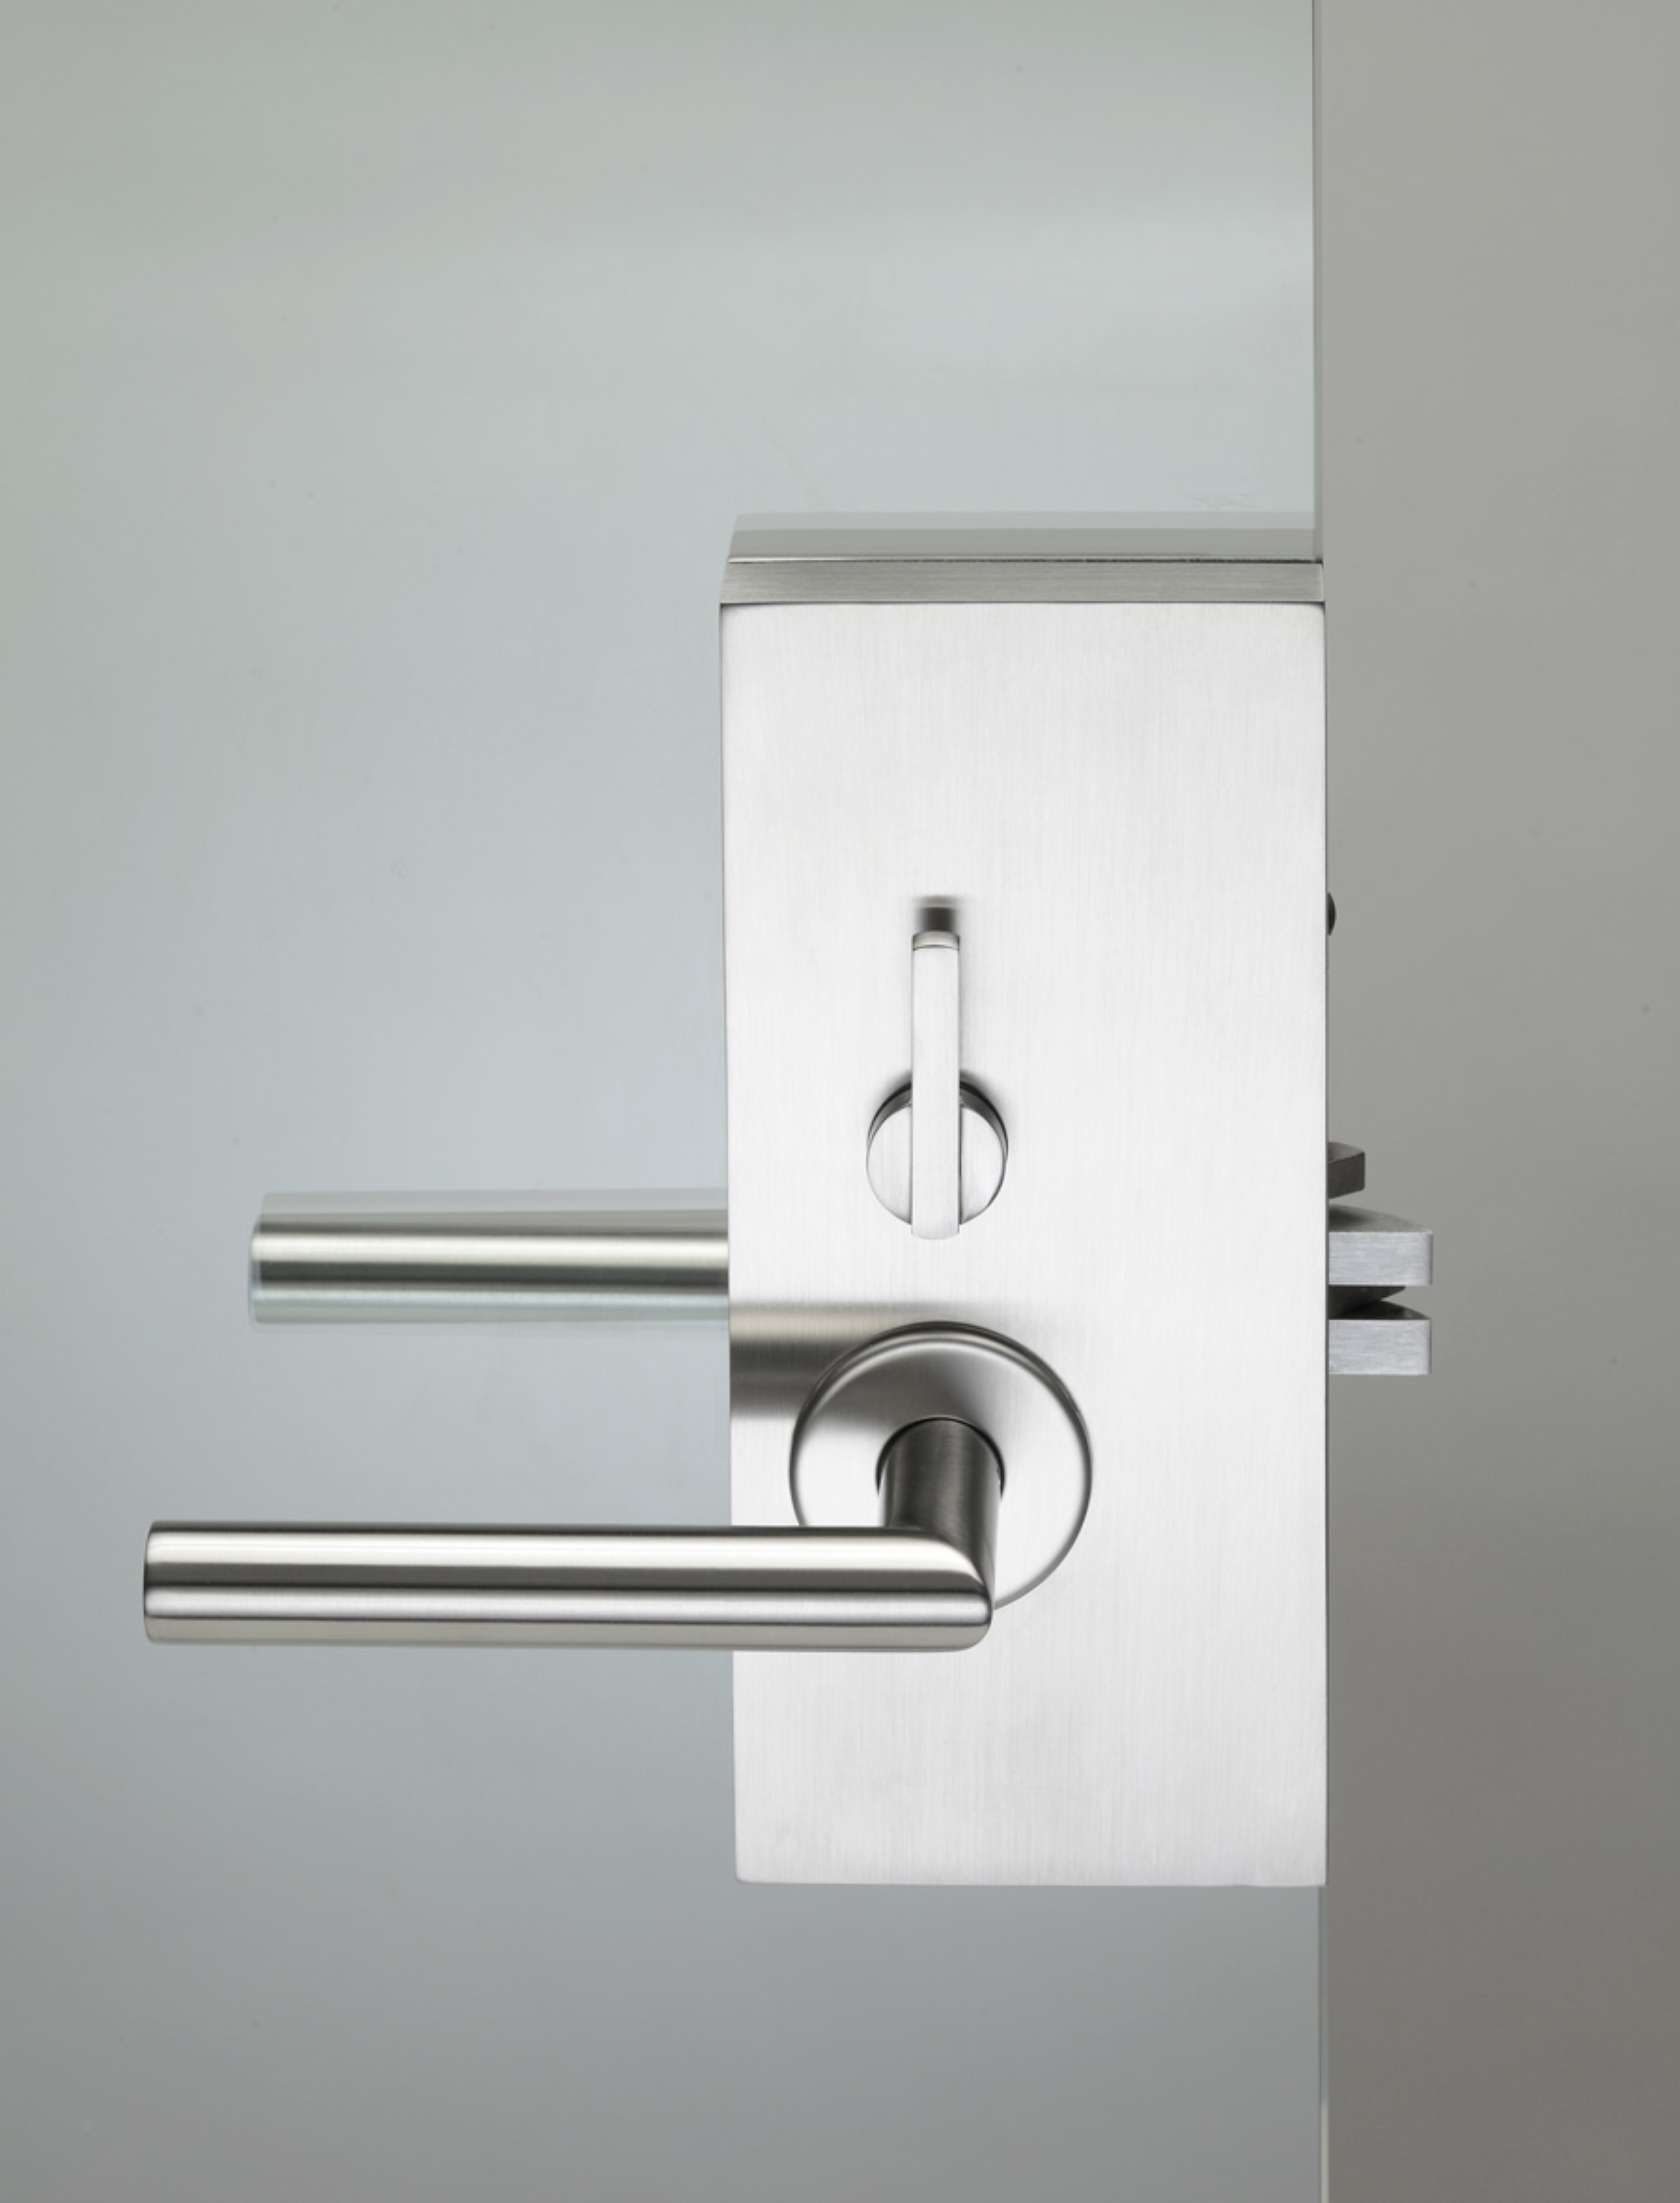 Mortise Locksets For Frameless Glass Doors Architizer Frameless Glass Doors Glass Door Door Glass Design